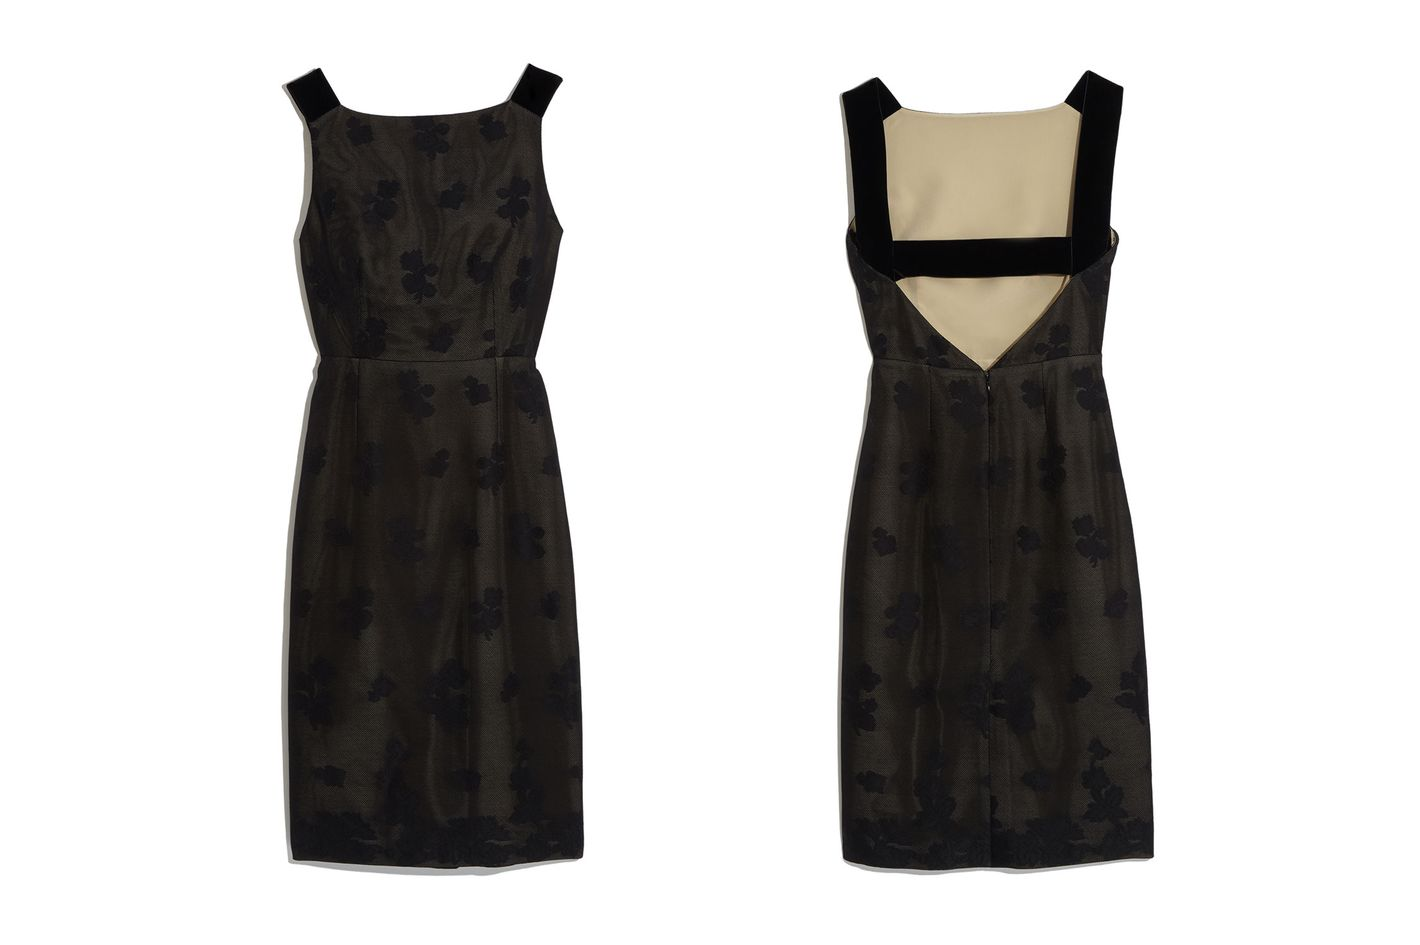 Prada Silk Jacquard Cross V-Back Sheath Dress